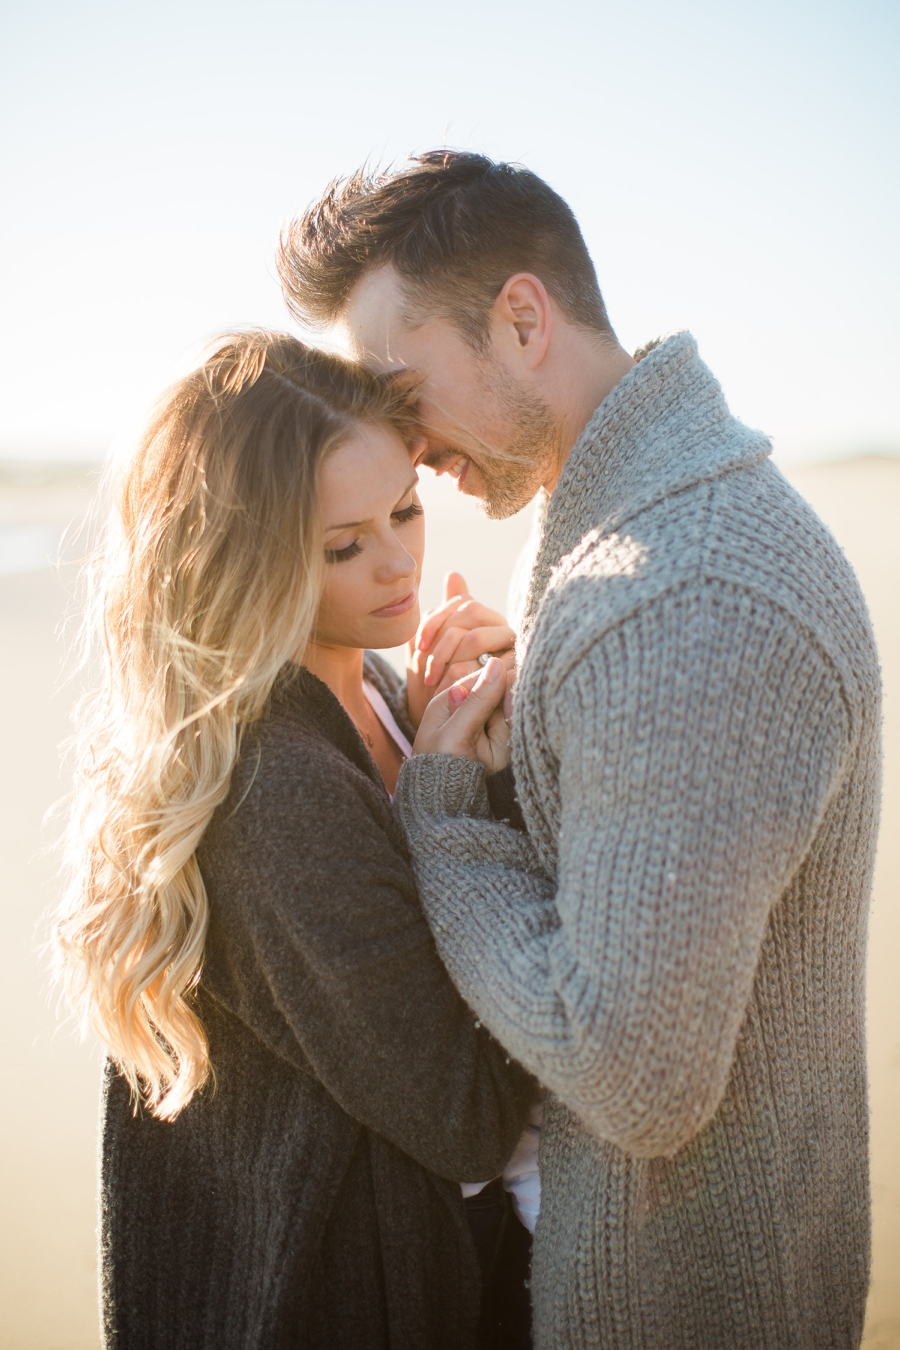 taylor_kinzie_photography_los_angeles_wedding_photographer_beach_engagement_session_0009